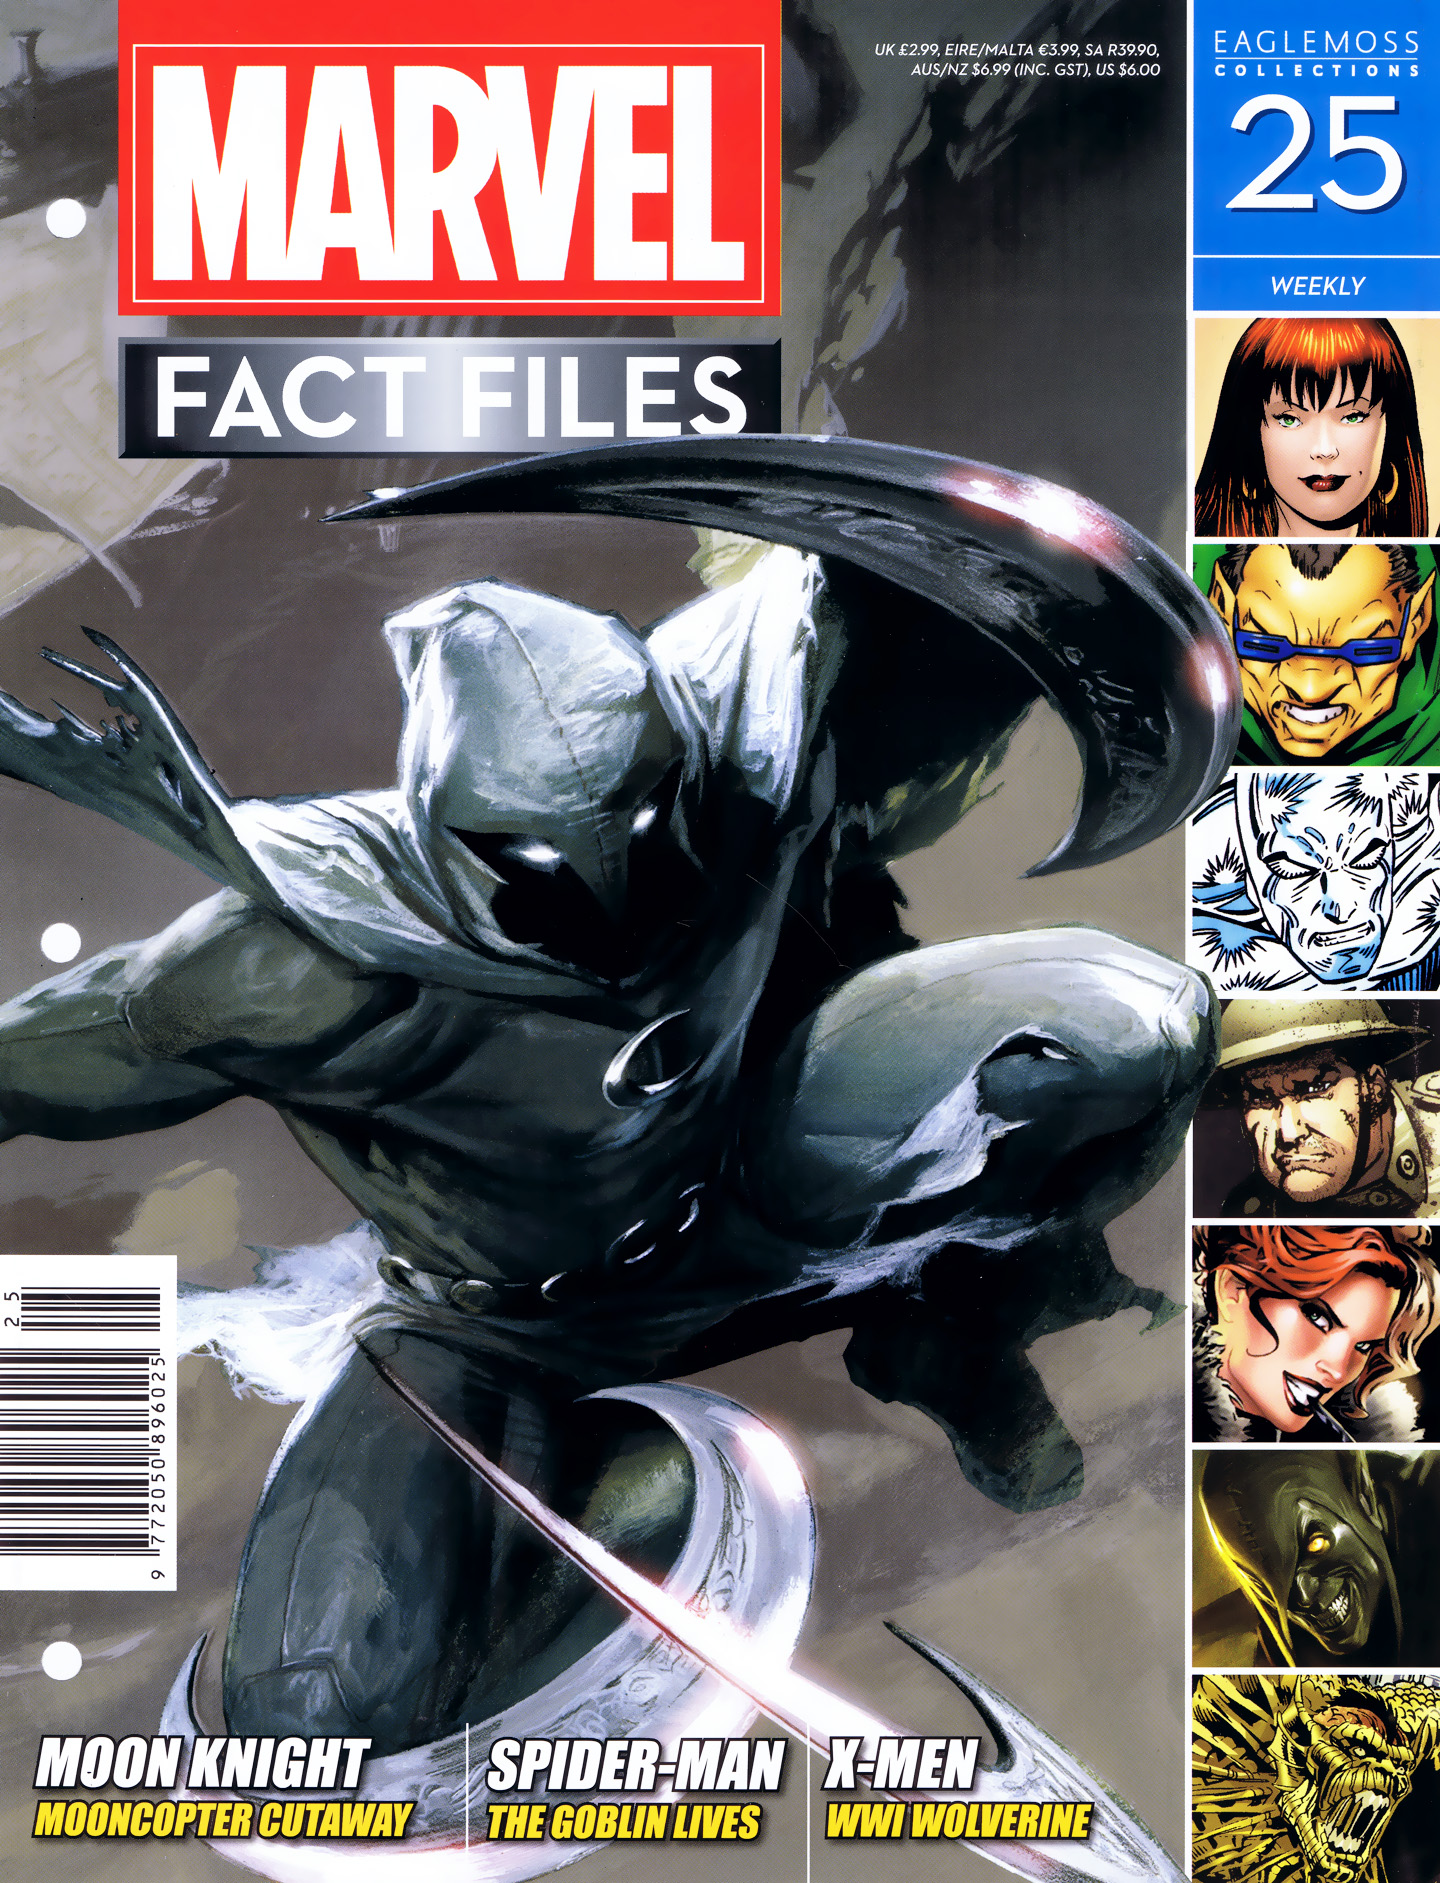 Marvel Fact Files 25 Page 1